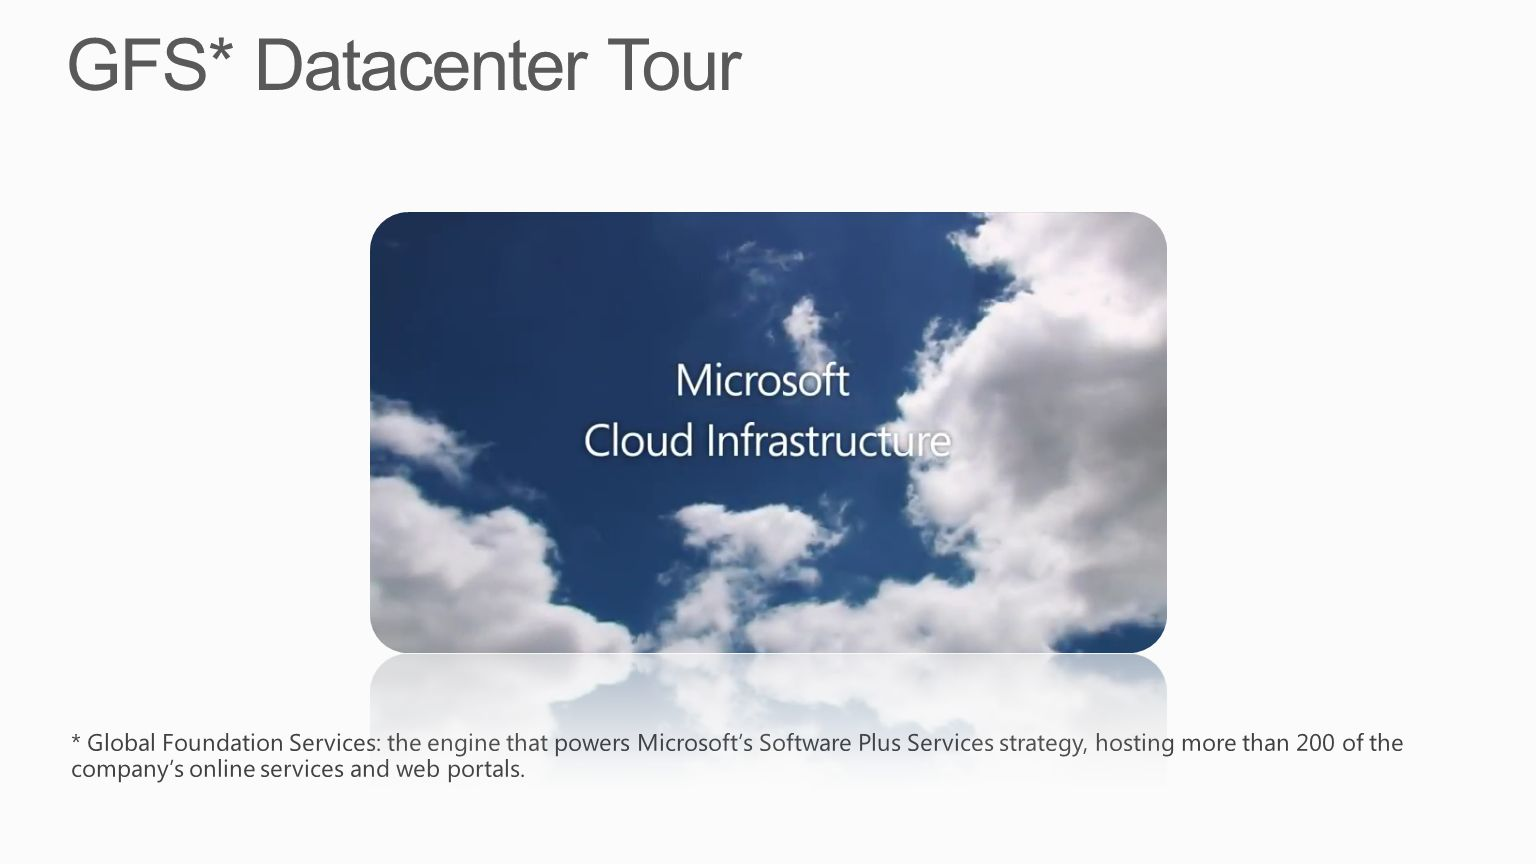 GFS* Datacenter Tour